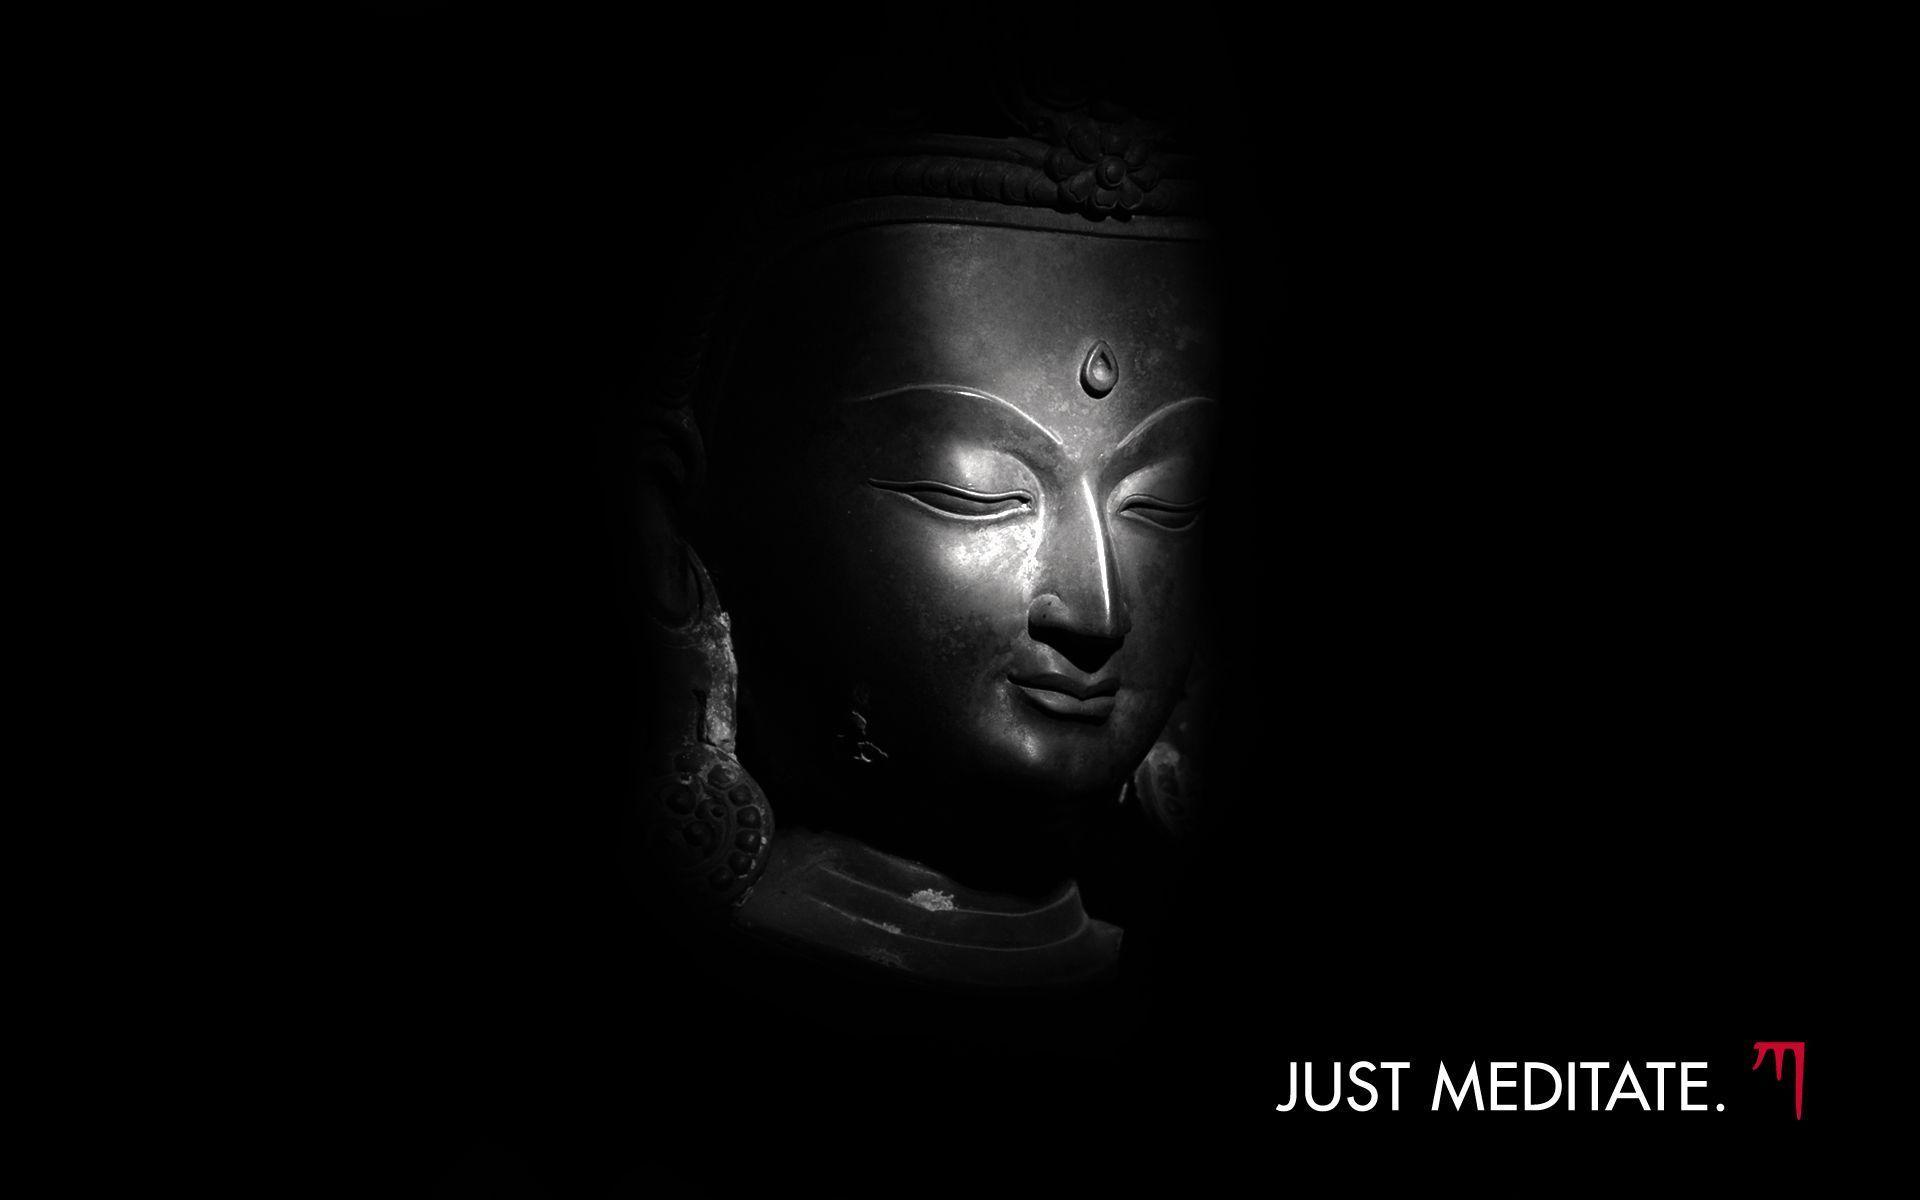 Lord Buddha Animated Wallpapers Buddha Wallpapers Wallpaper Cave